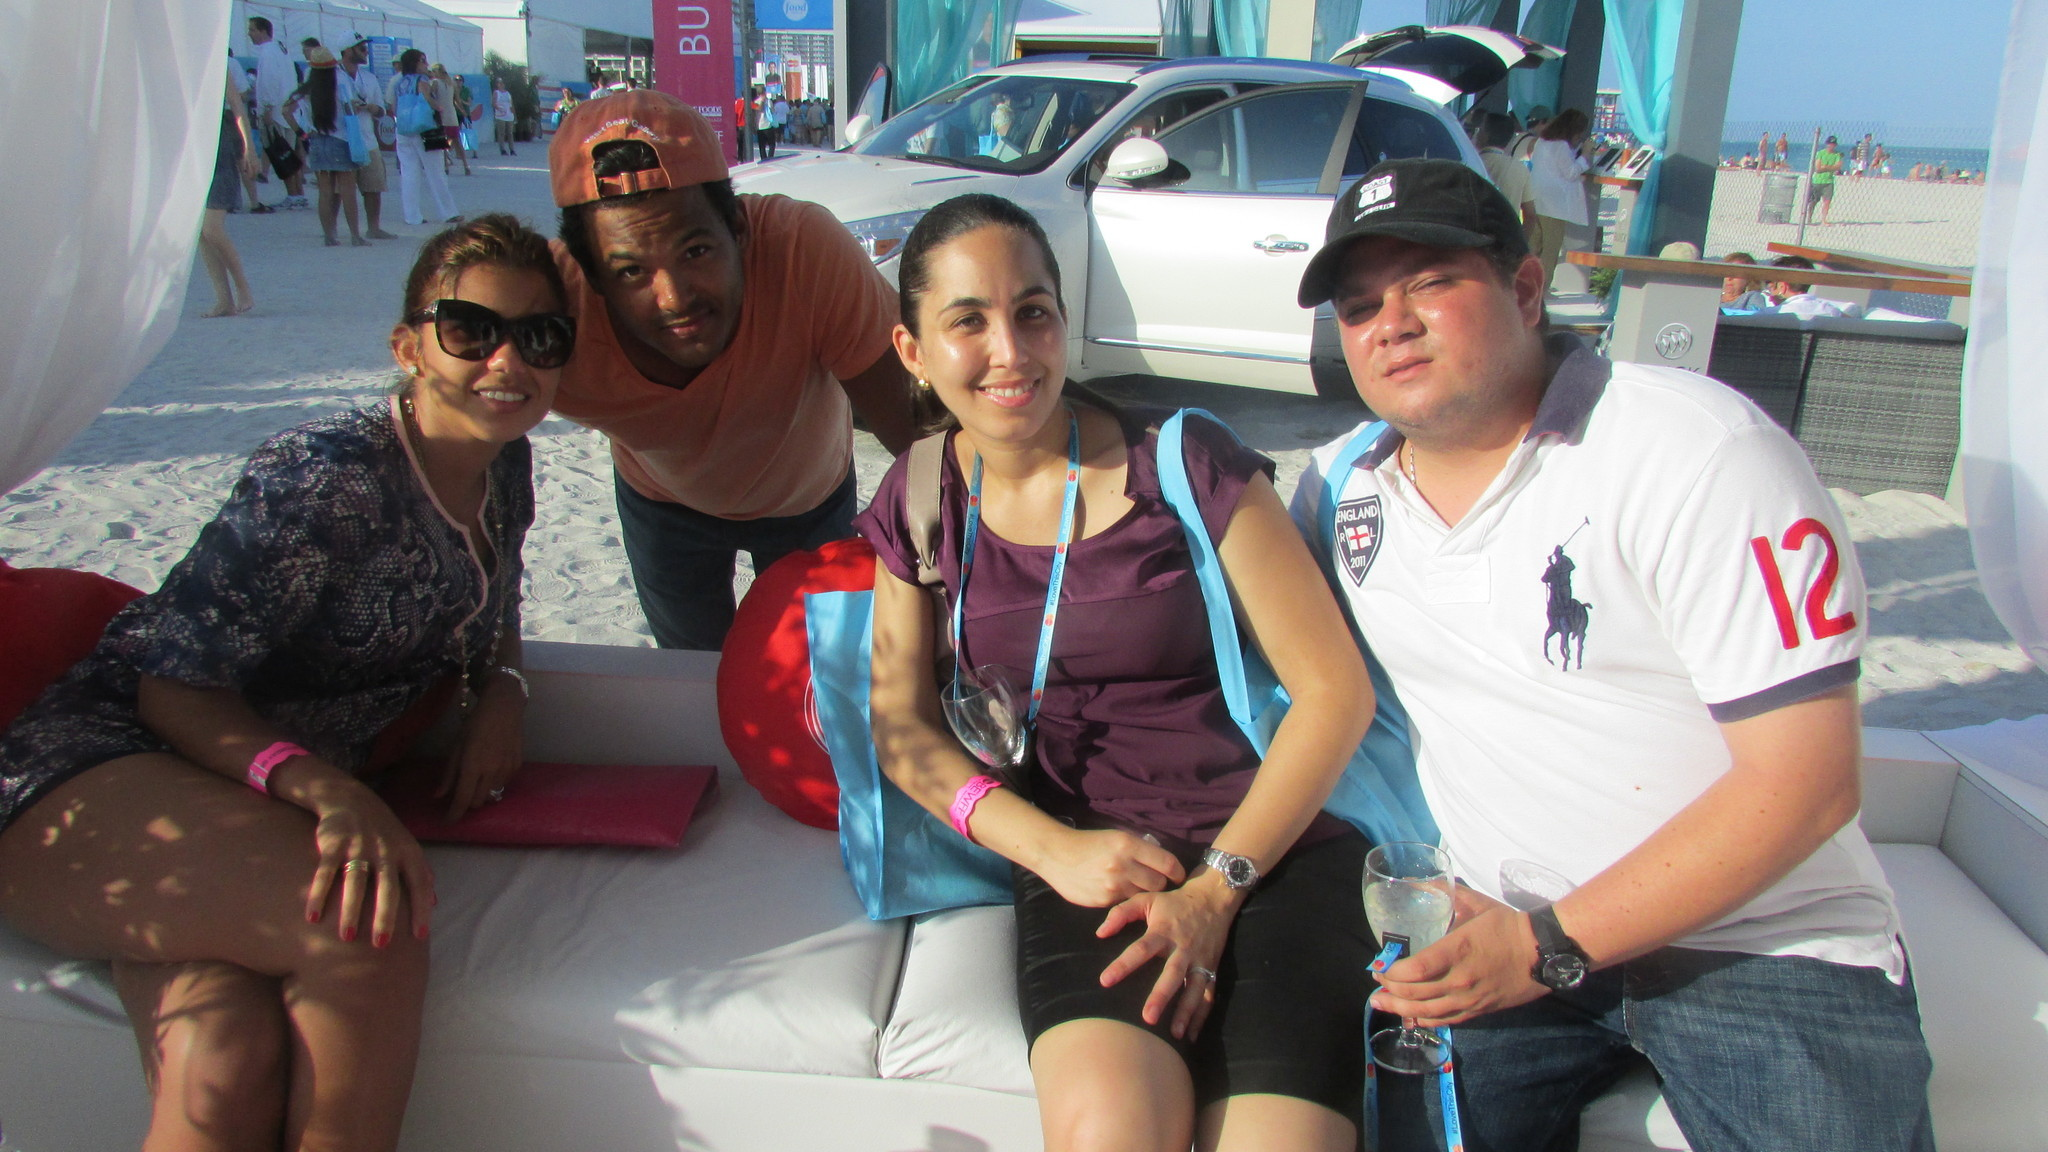 Spot your friends at SoBe Wine and Food Festival - Grand tasting tents